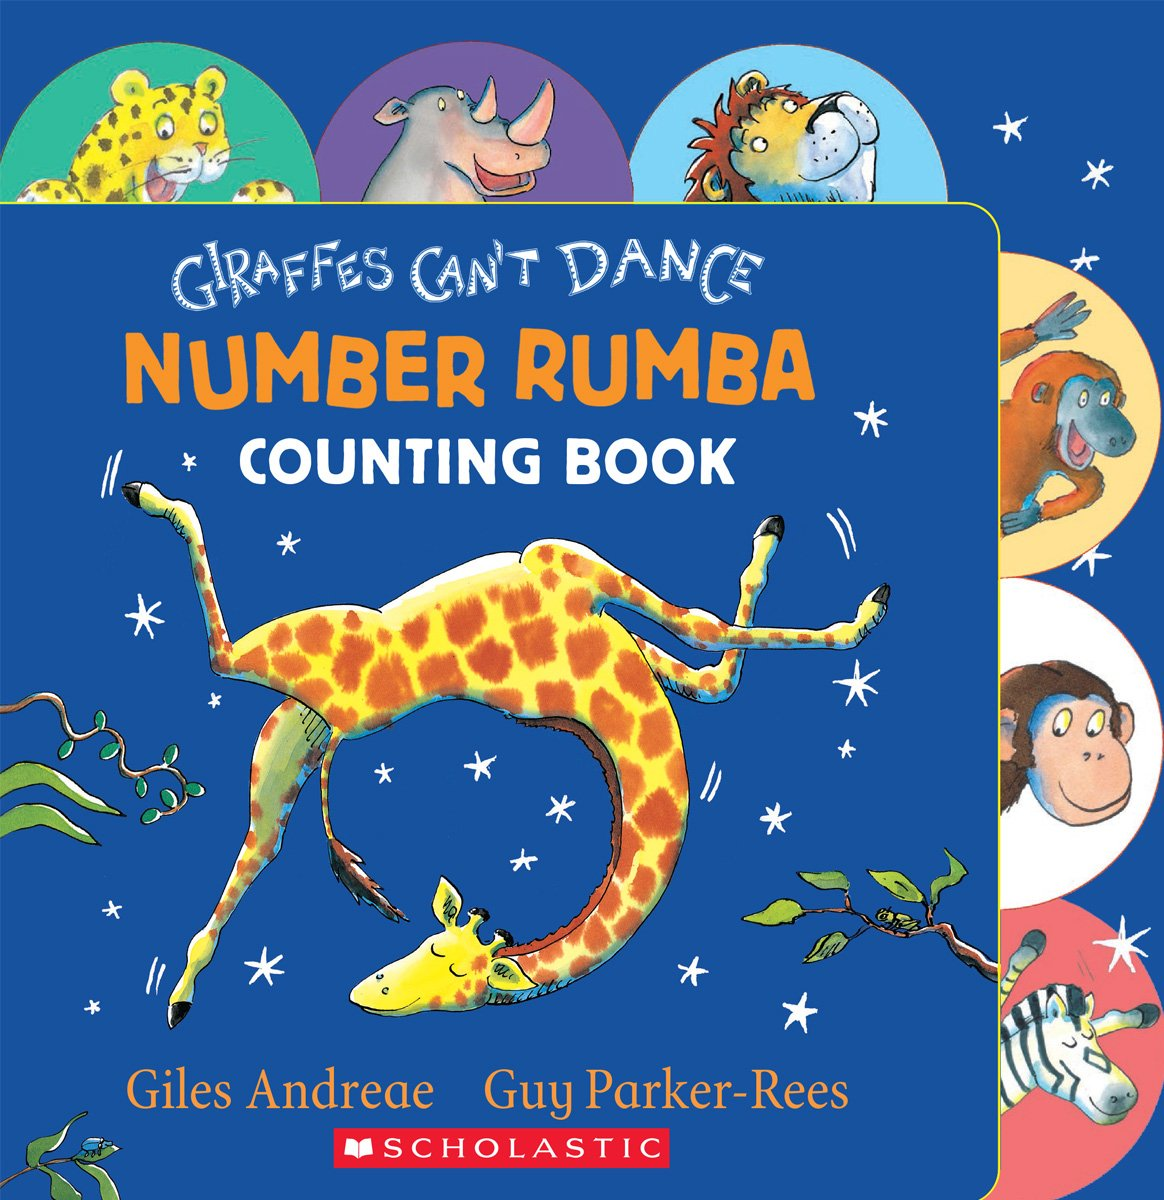 Giraffes Can't Dance: Number Rumba Counting Book: Amazon.co.uk: Giles  Andreae, Guy Parker-Rees: 9780545639965: Books